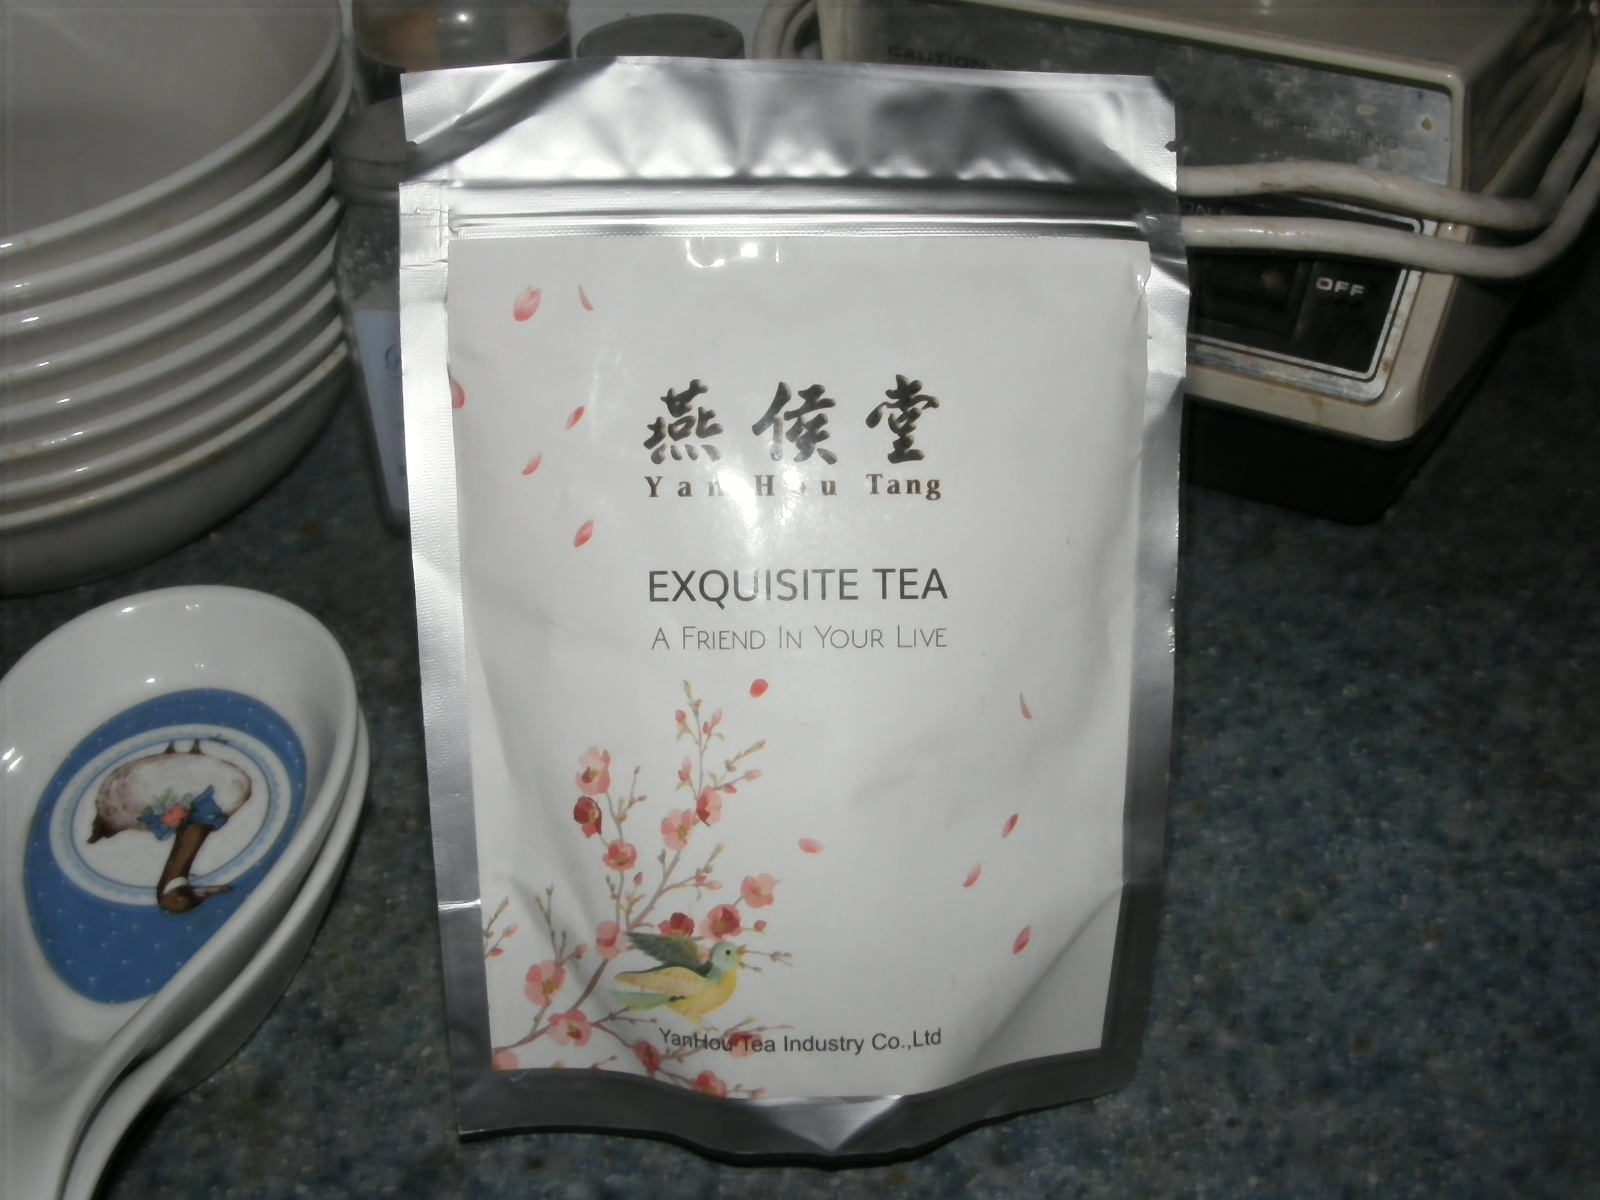 Delicious tea, like I've come to expect from this company.